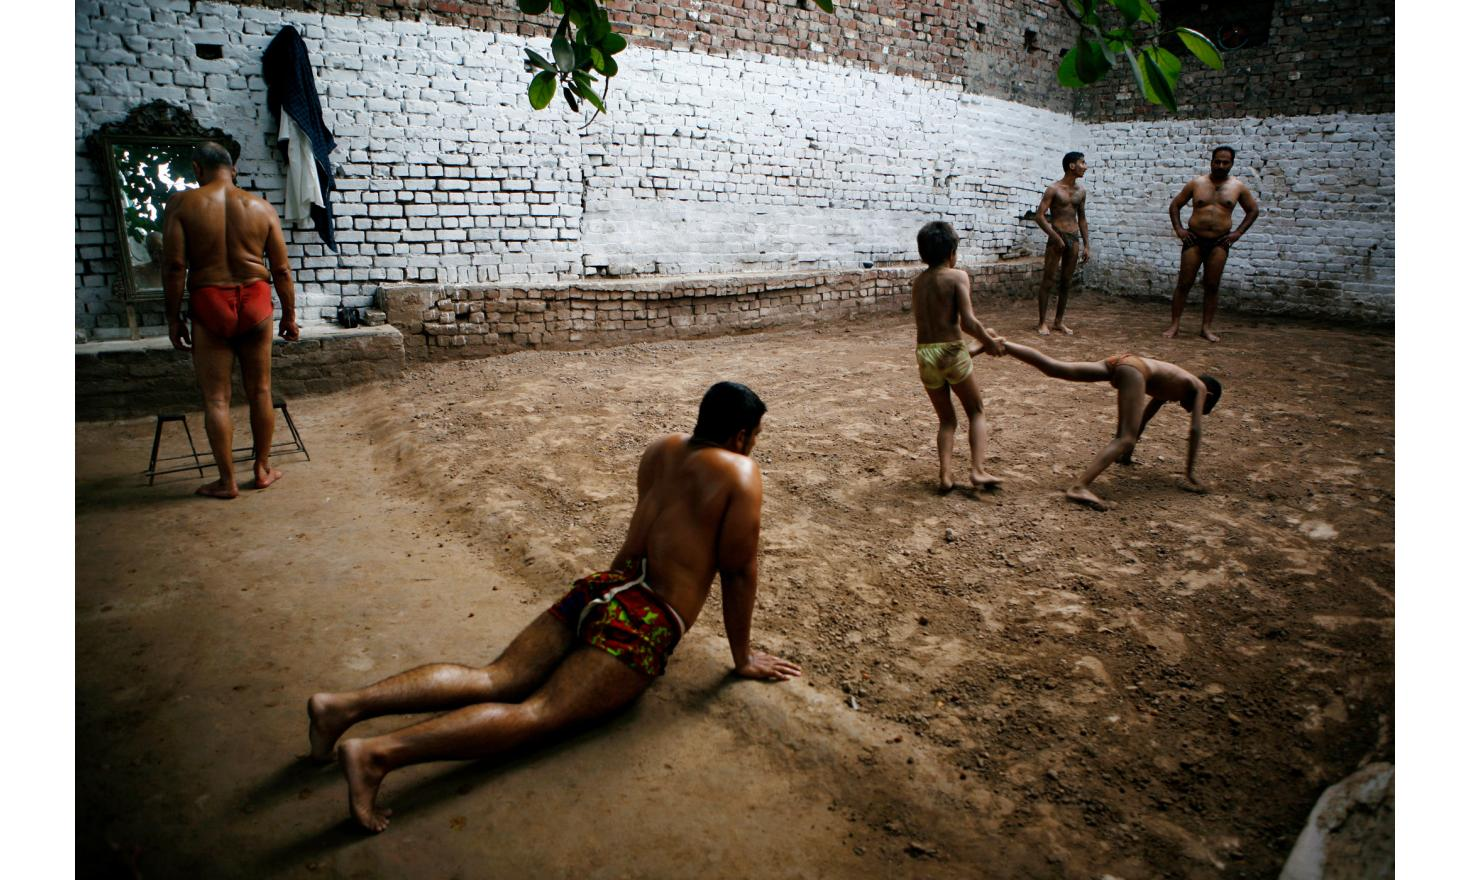 Sufism: Kushti training in an arena of the old city of Lahore. The arena for this struggle are traditionally located on the outskirts of Sufi tombs / Formation Kushti dans une arène de la vieille ville de Lahore.